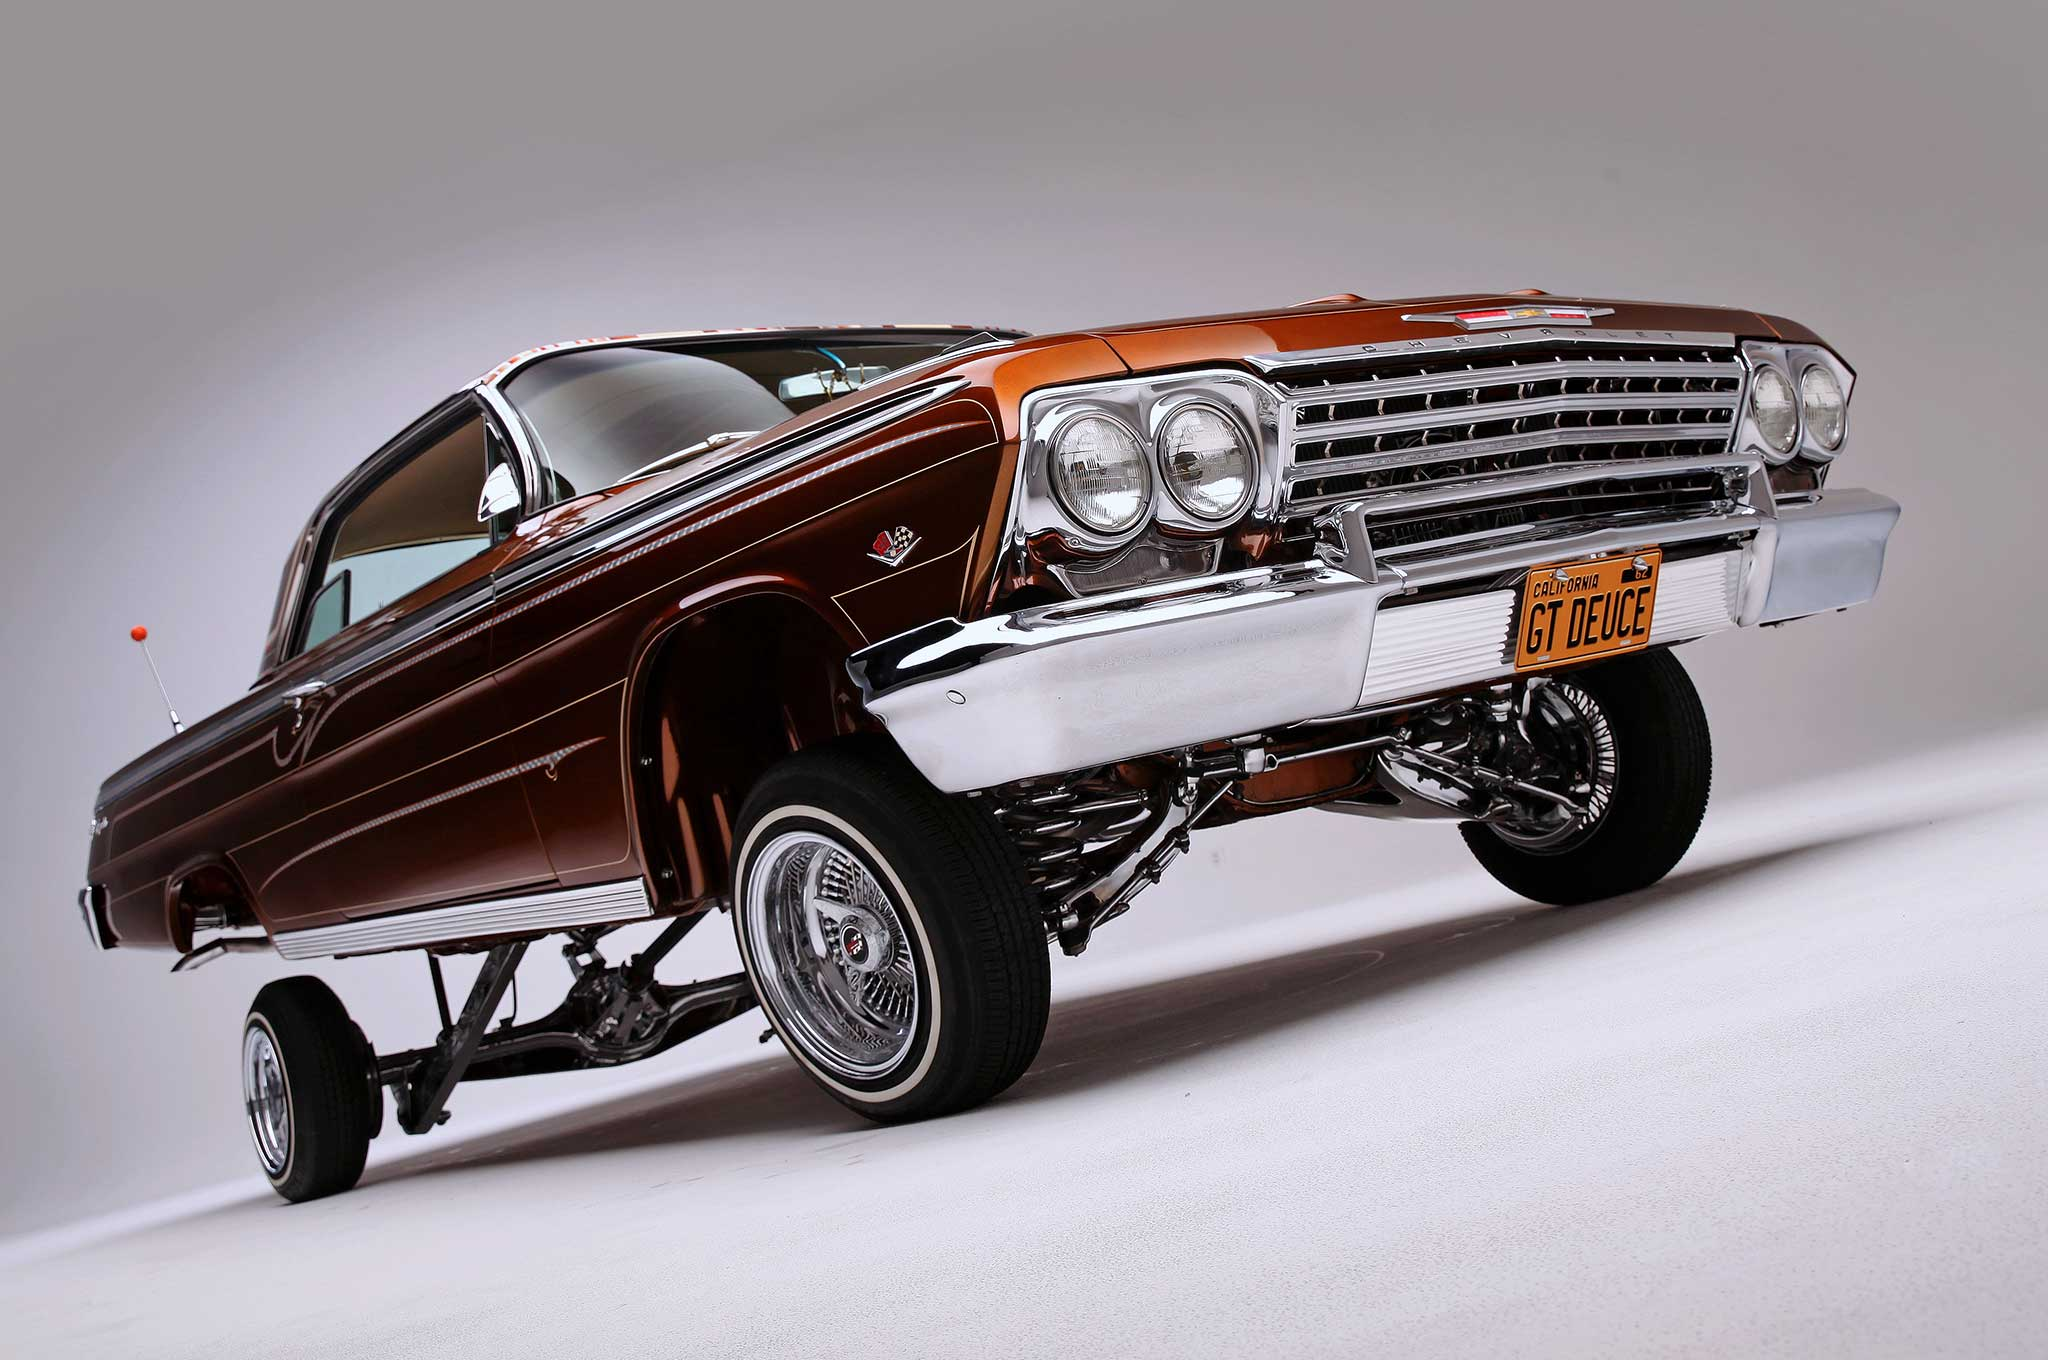 Building This Impala Has Been A Life Long Dream For Pete Beltran